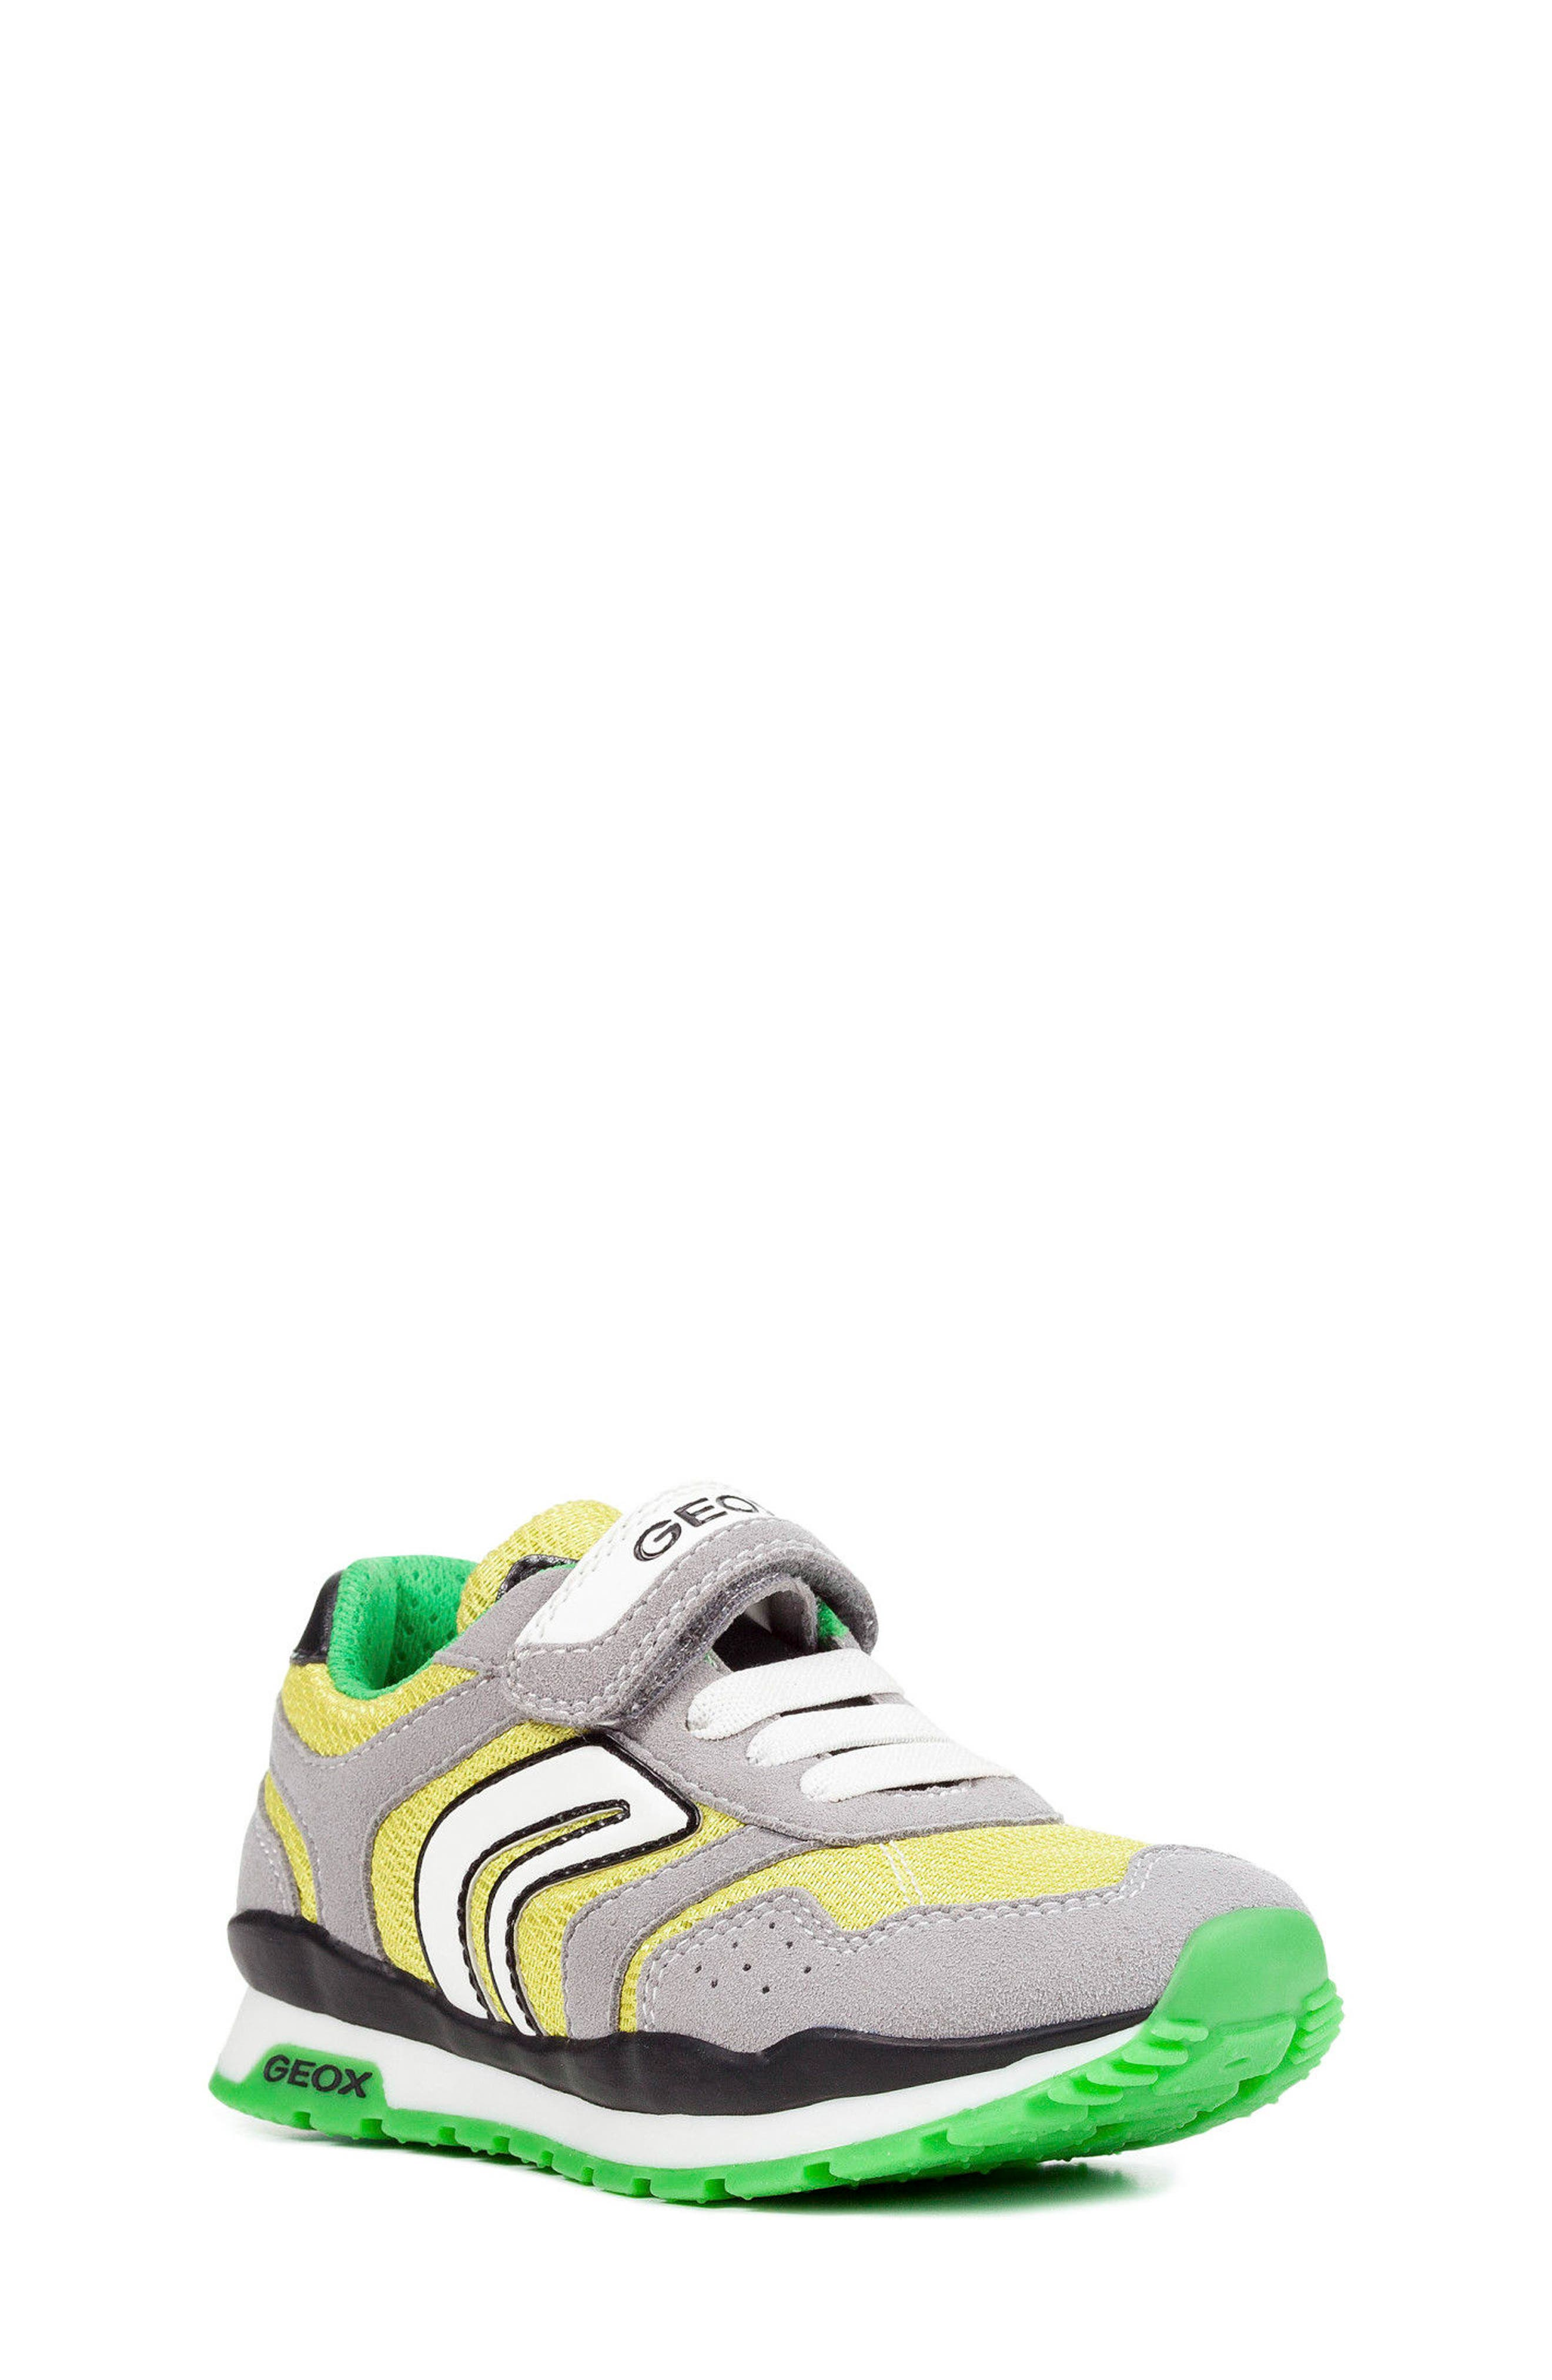 Pavel Low Top Sneaker,                             Main thumbnail 1, color,                             Grey/ Lime